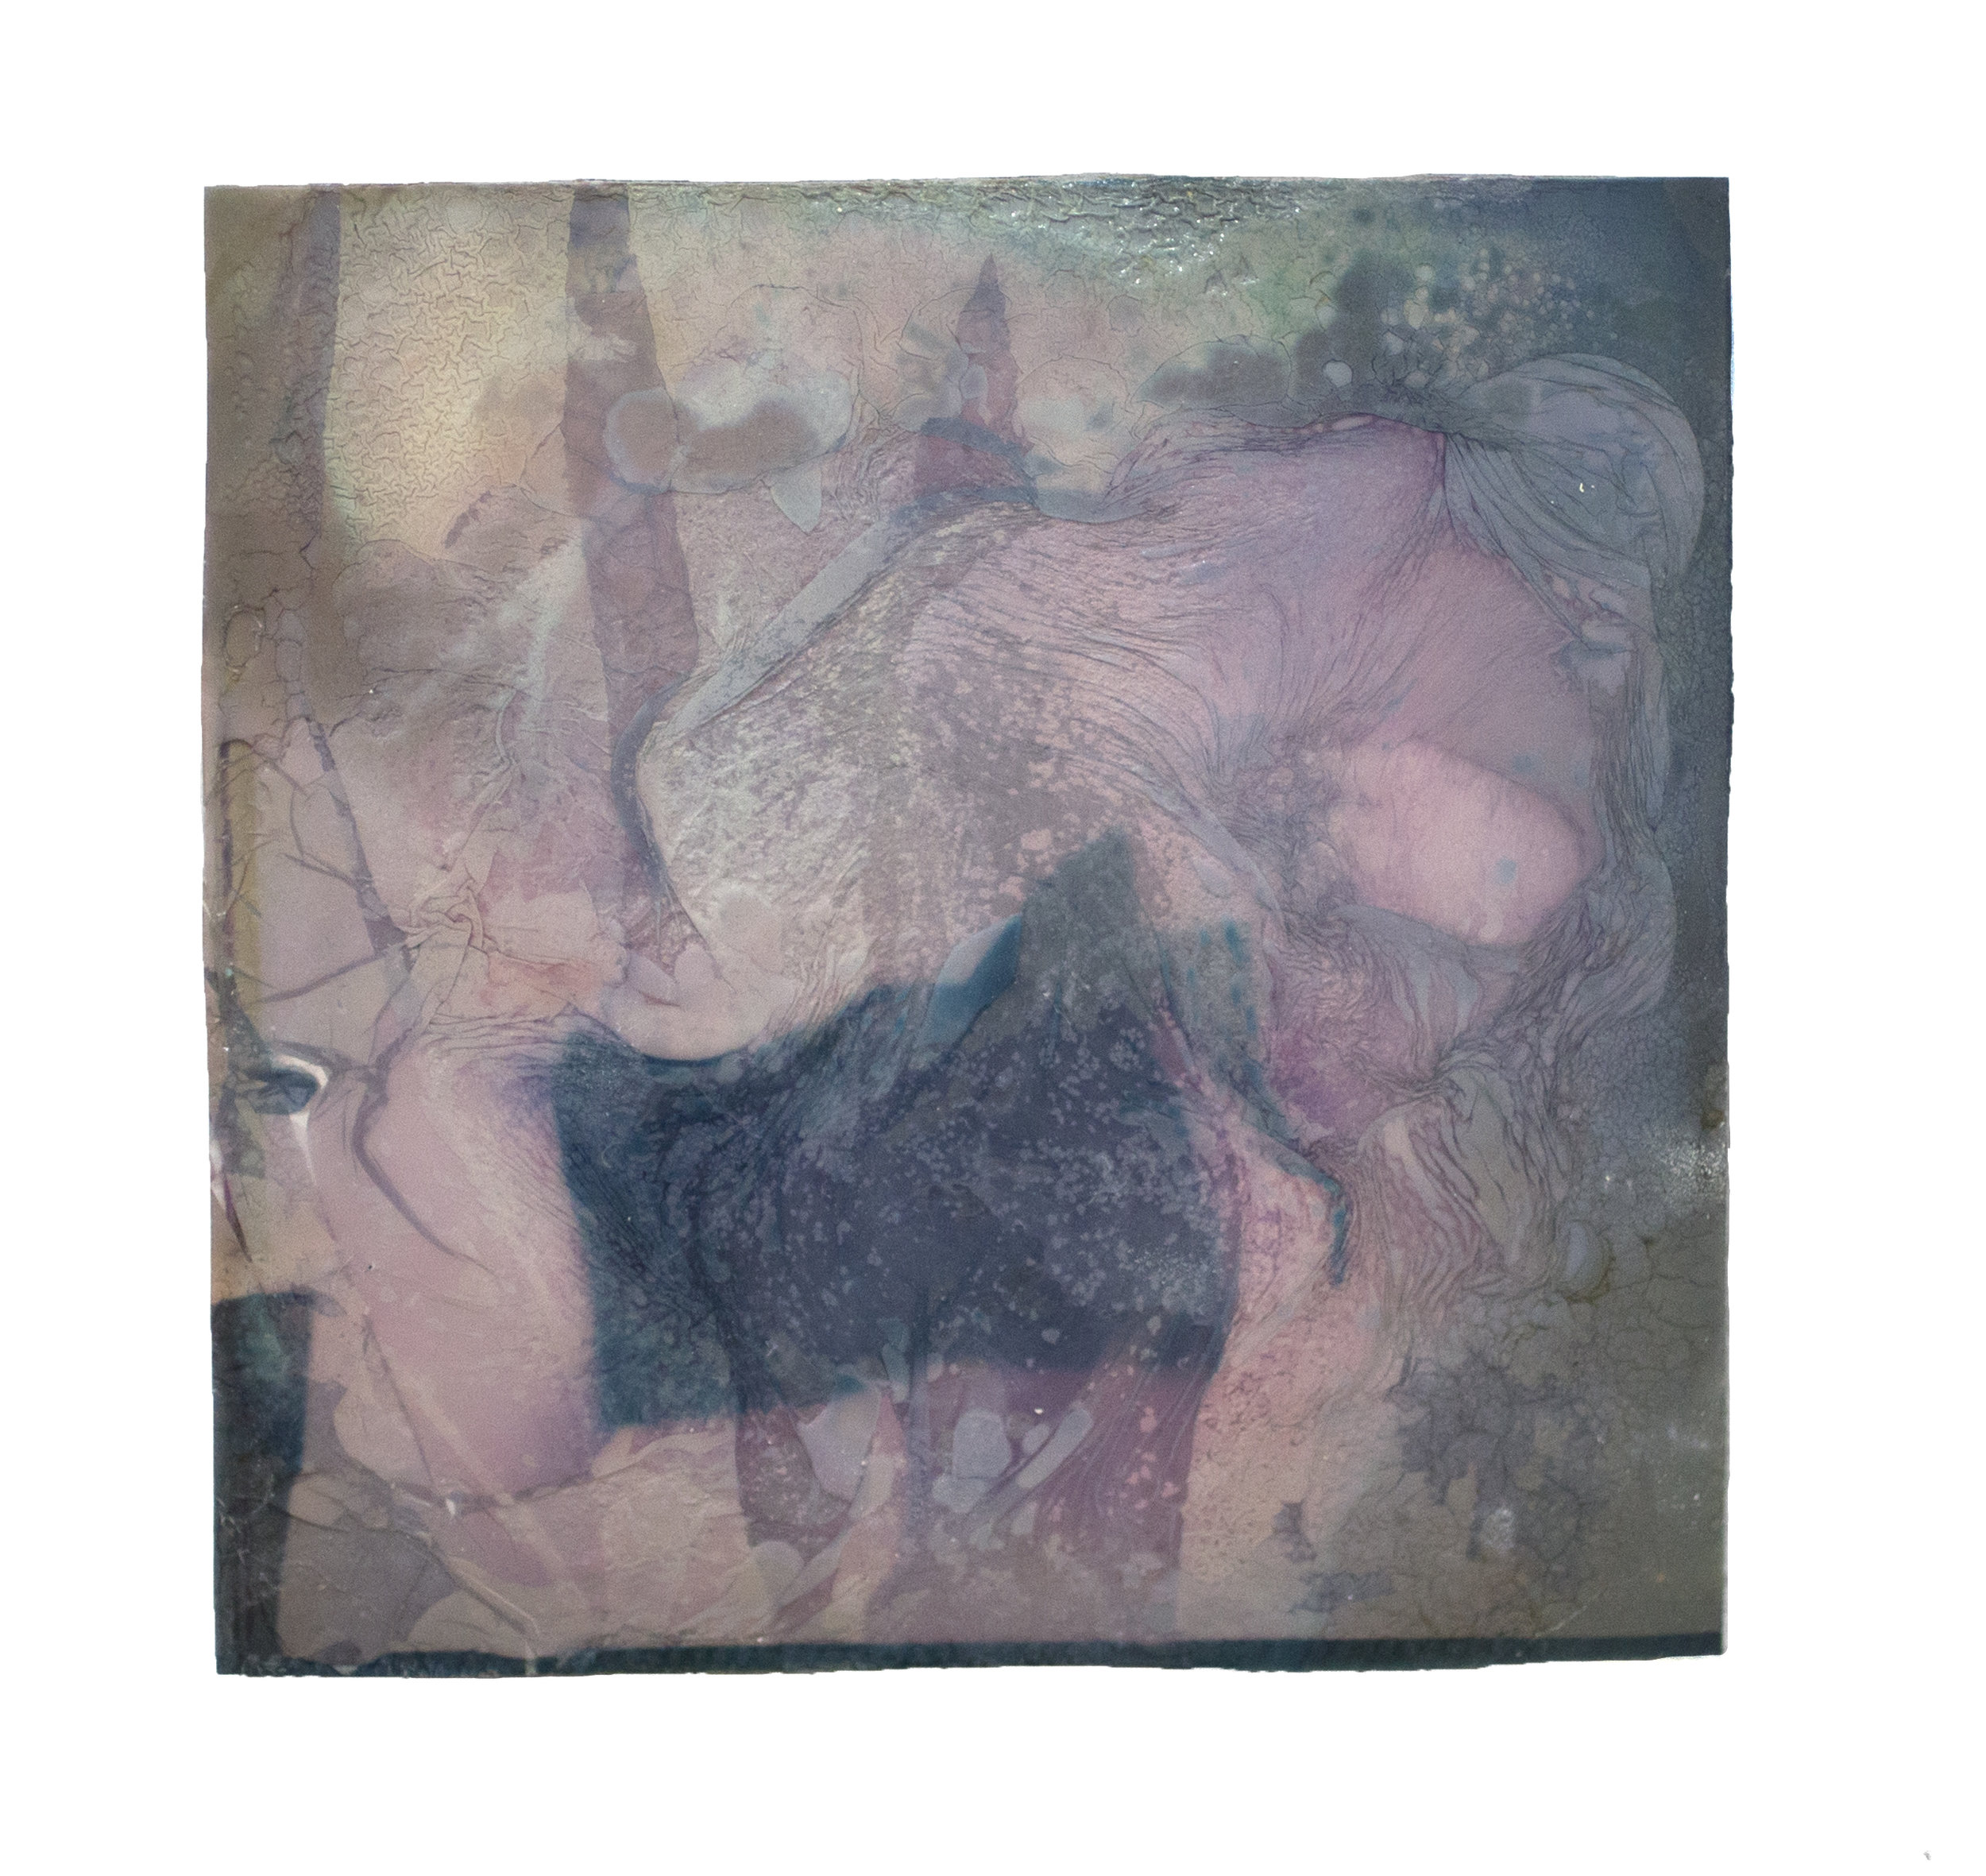 "Seemingly swimming, object search   Polaroid film, grapeseed oil, collage   3"" x 3""  2019"